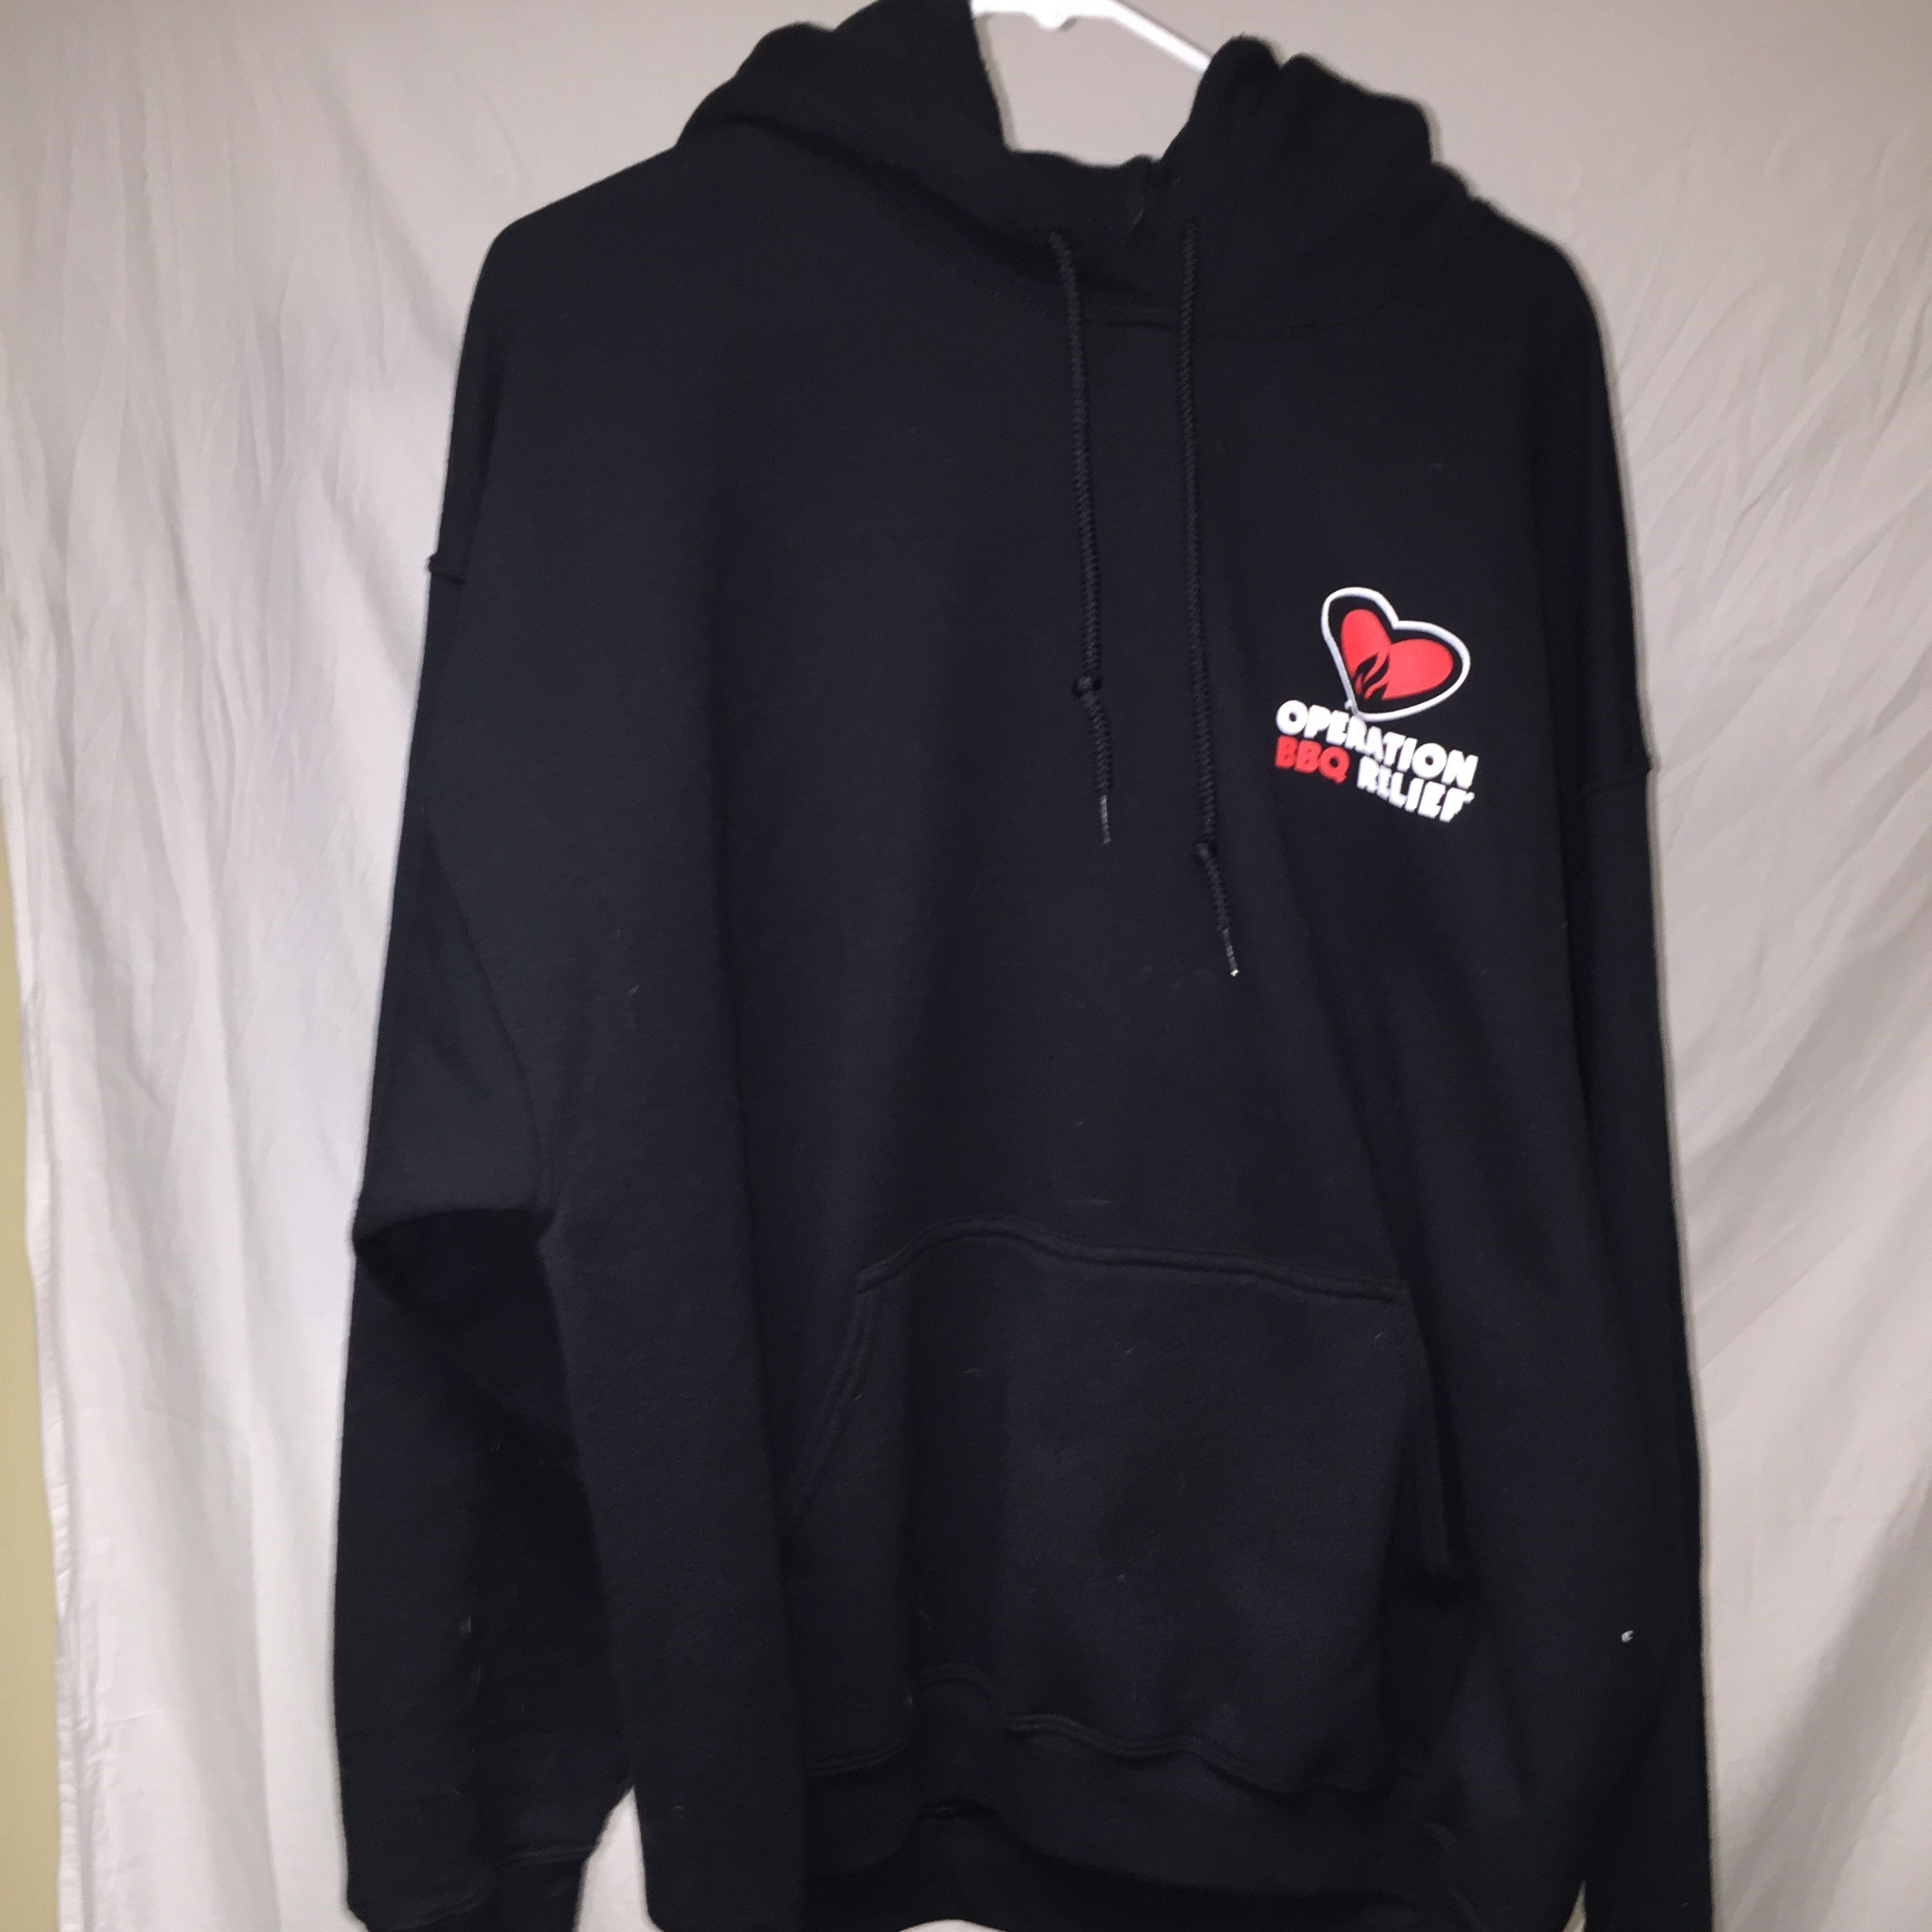 Operation BBQ Relief - Disaster Relief Hoodie